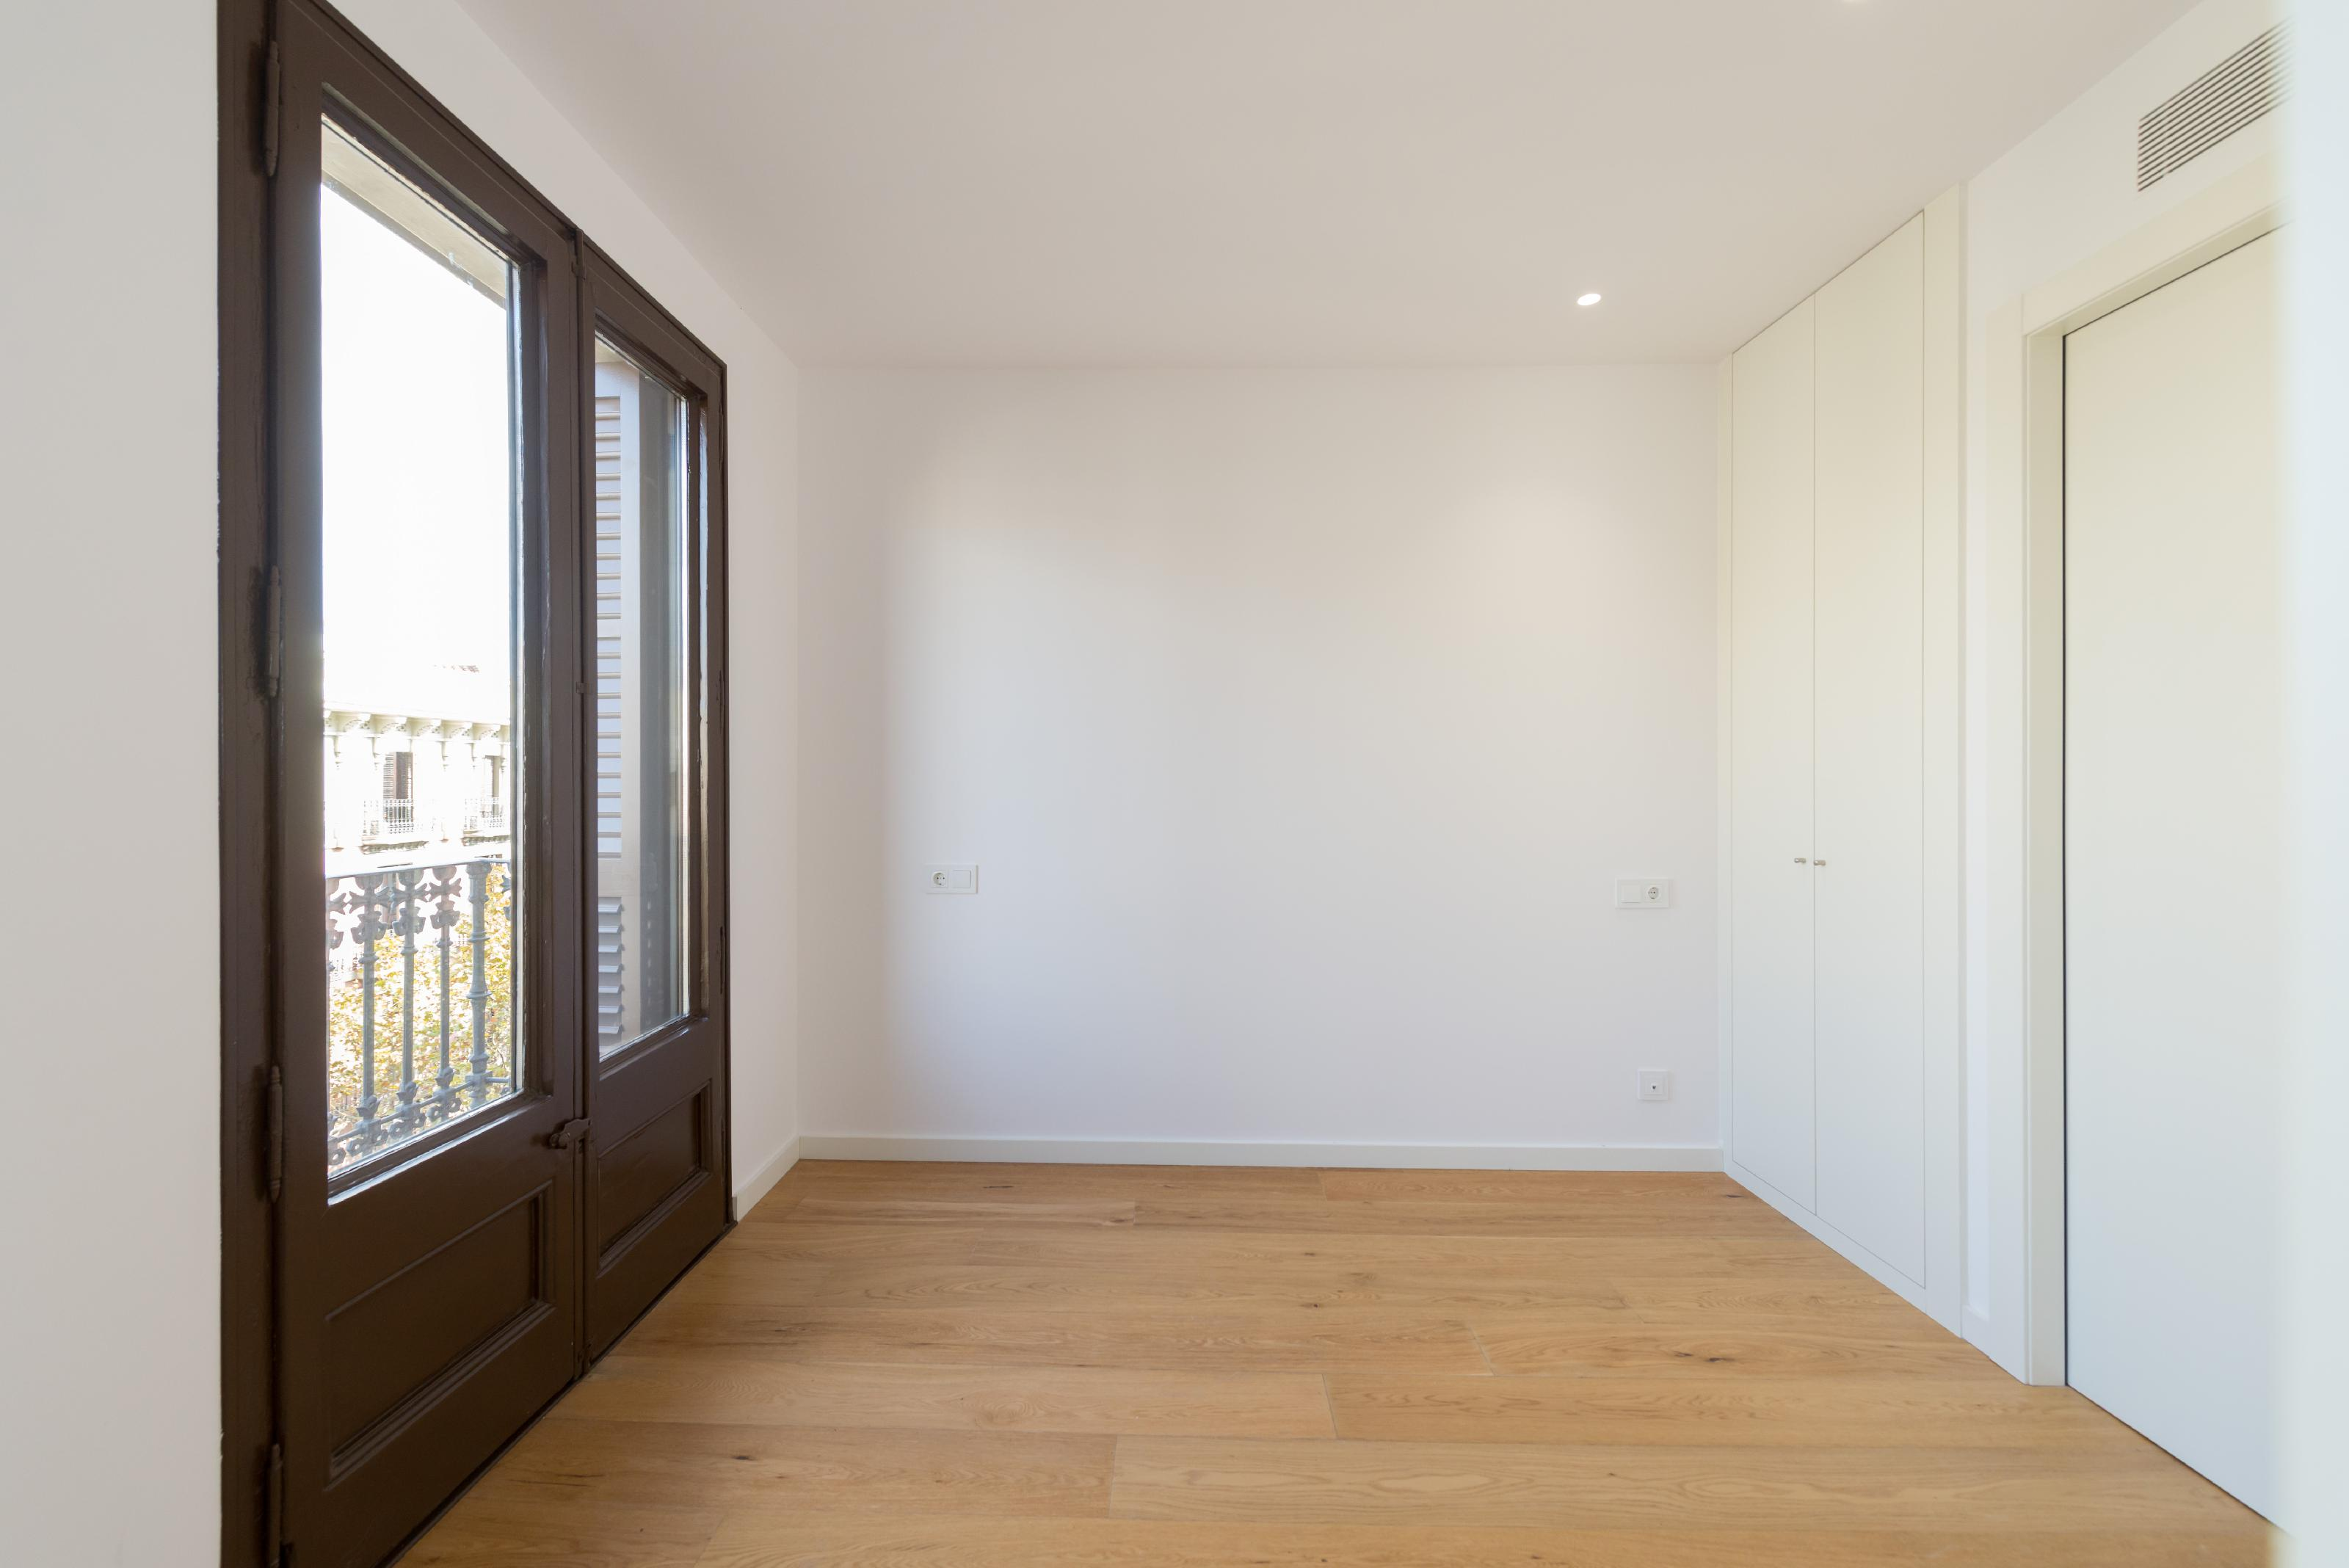 236358 Flat for sale in Eixample, Old Left Eixample 22